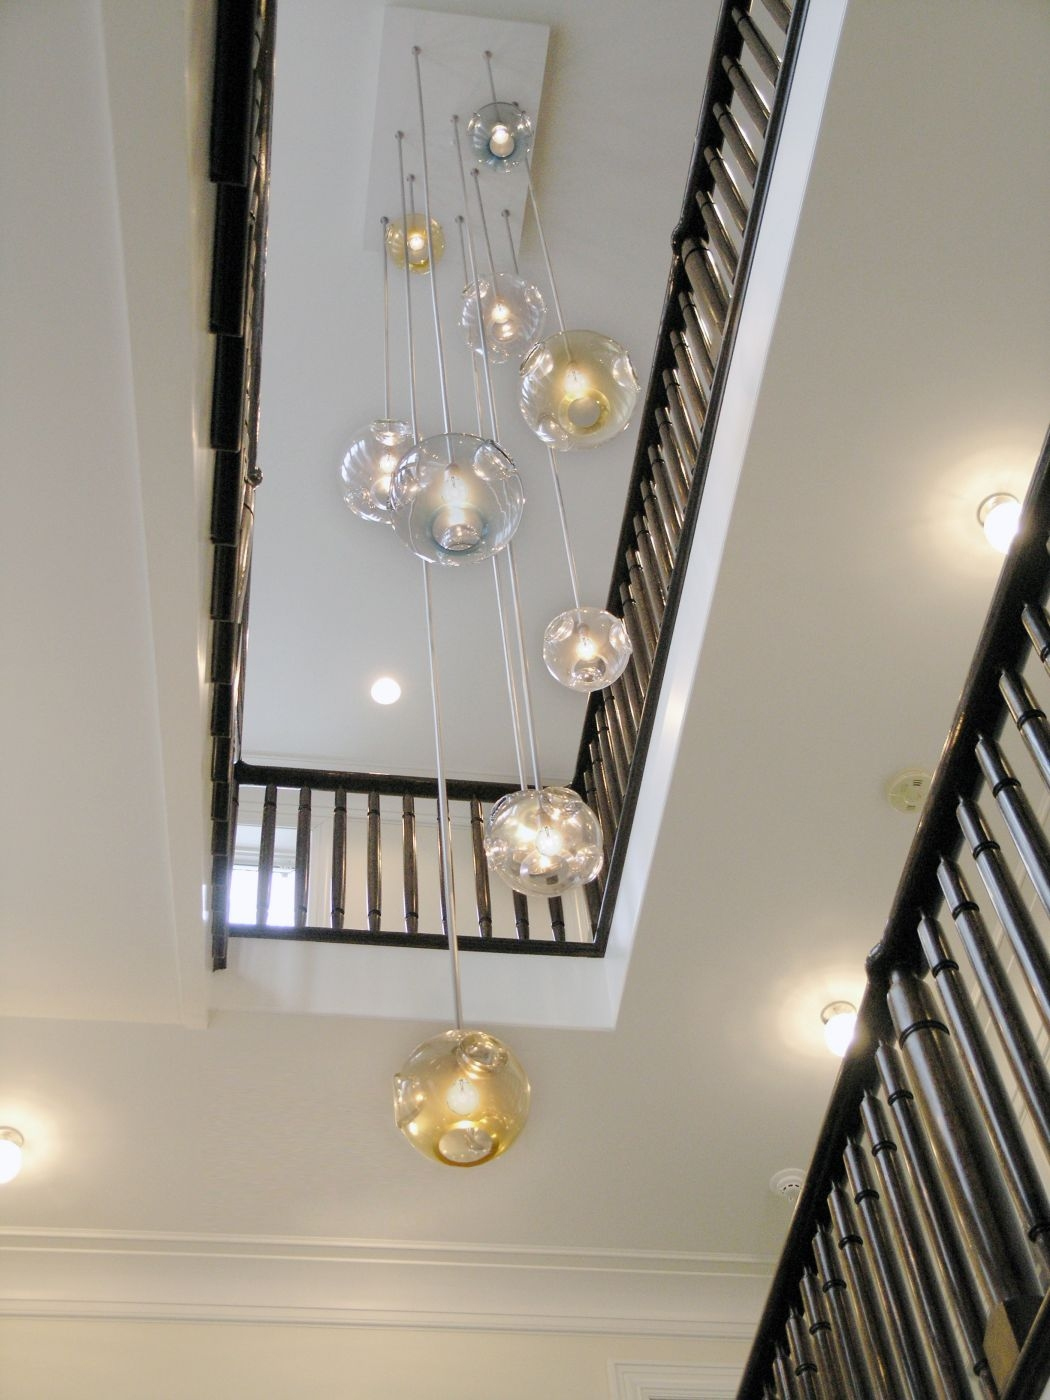 Jgooddesign Aqua Chandelier With Stairwell Chandeliers (#7 of 12)